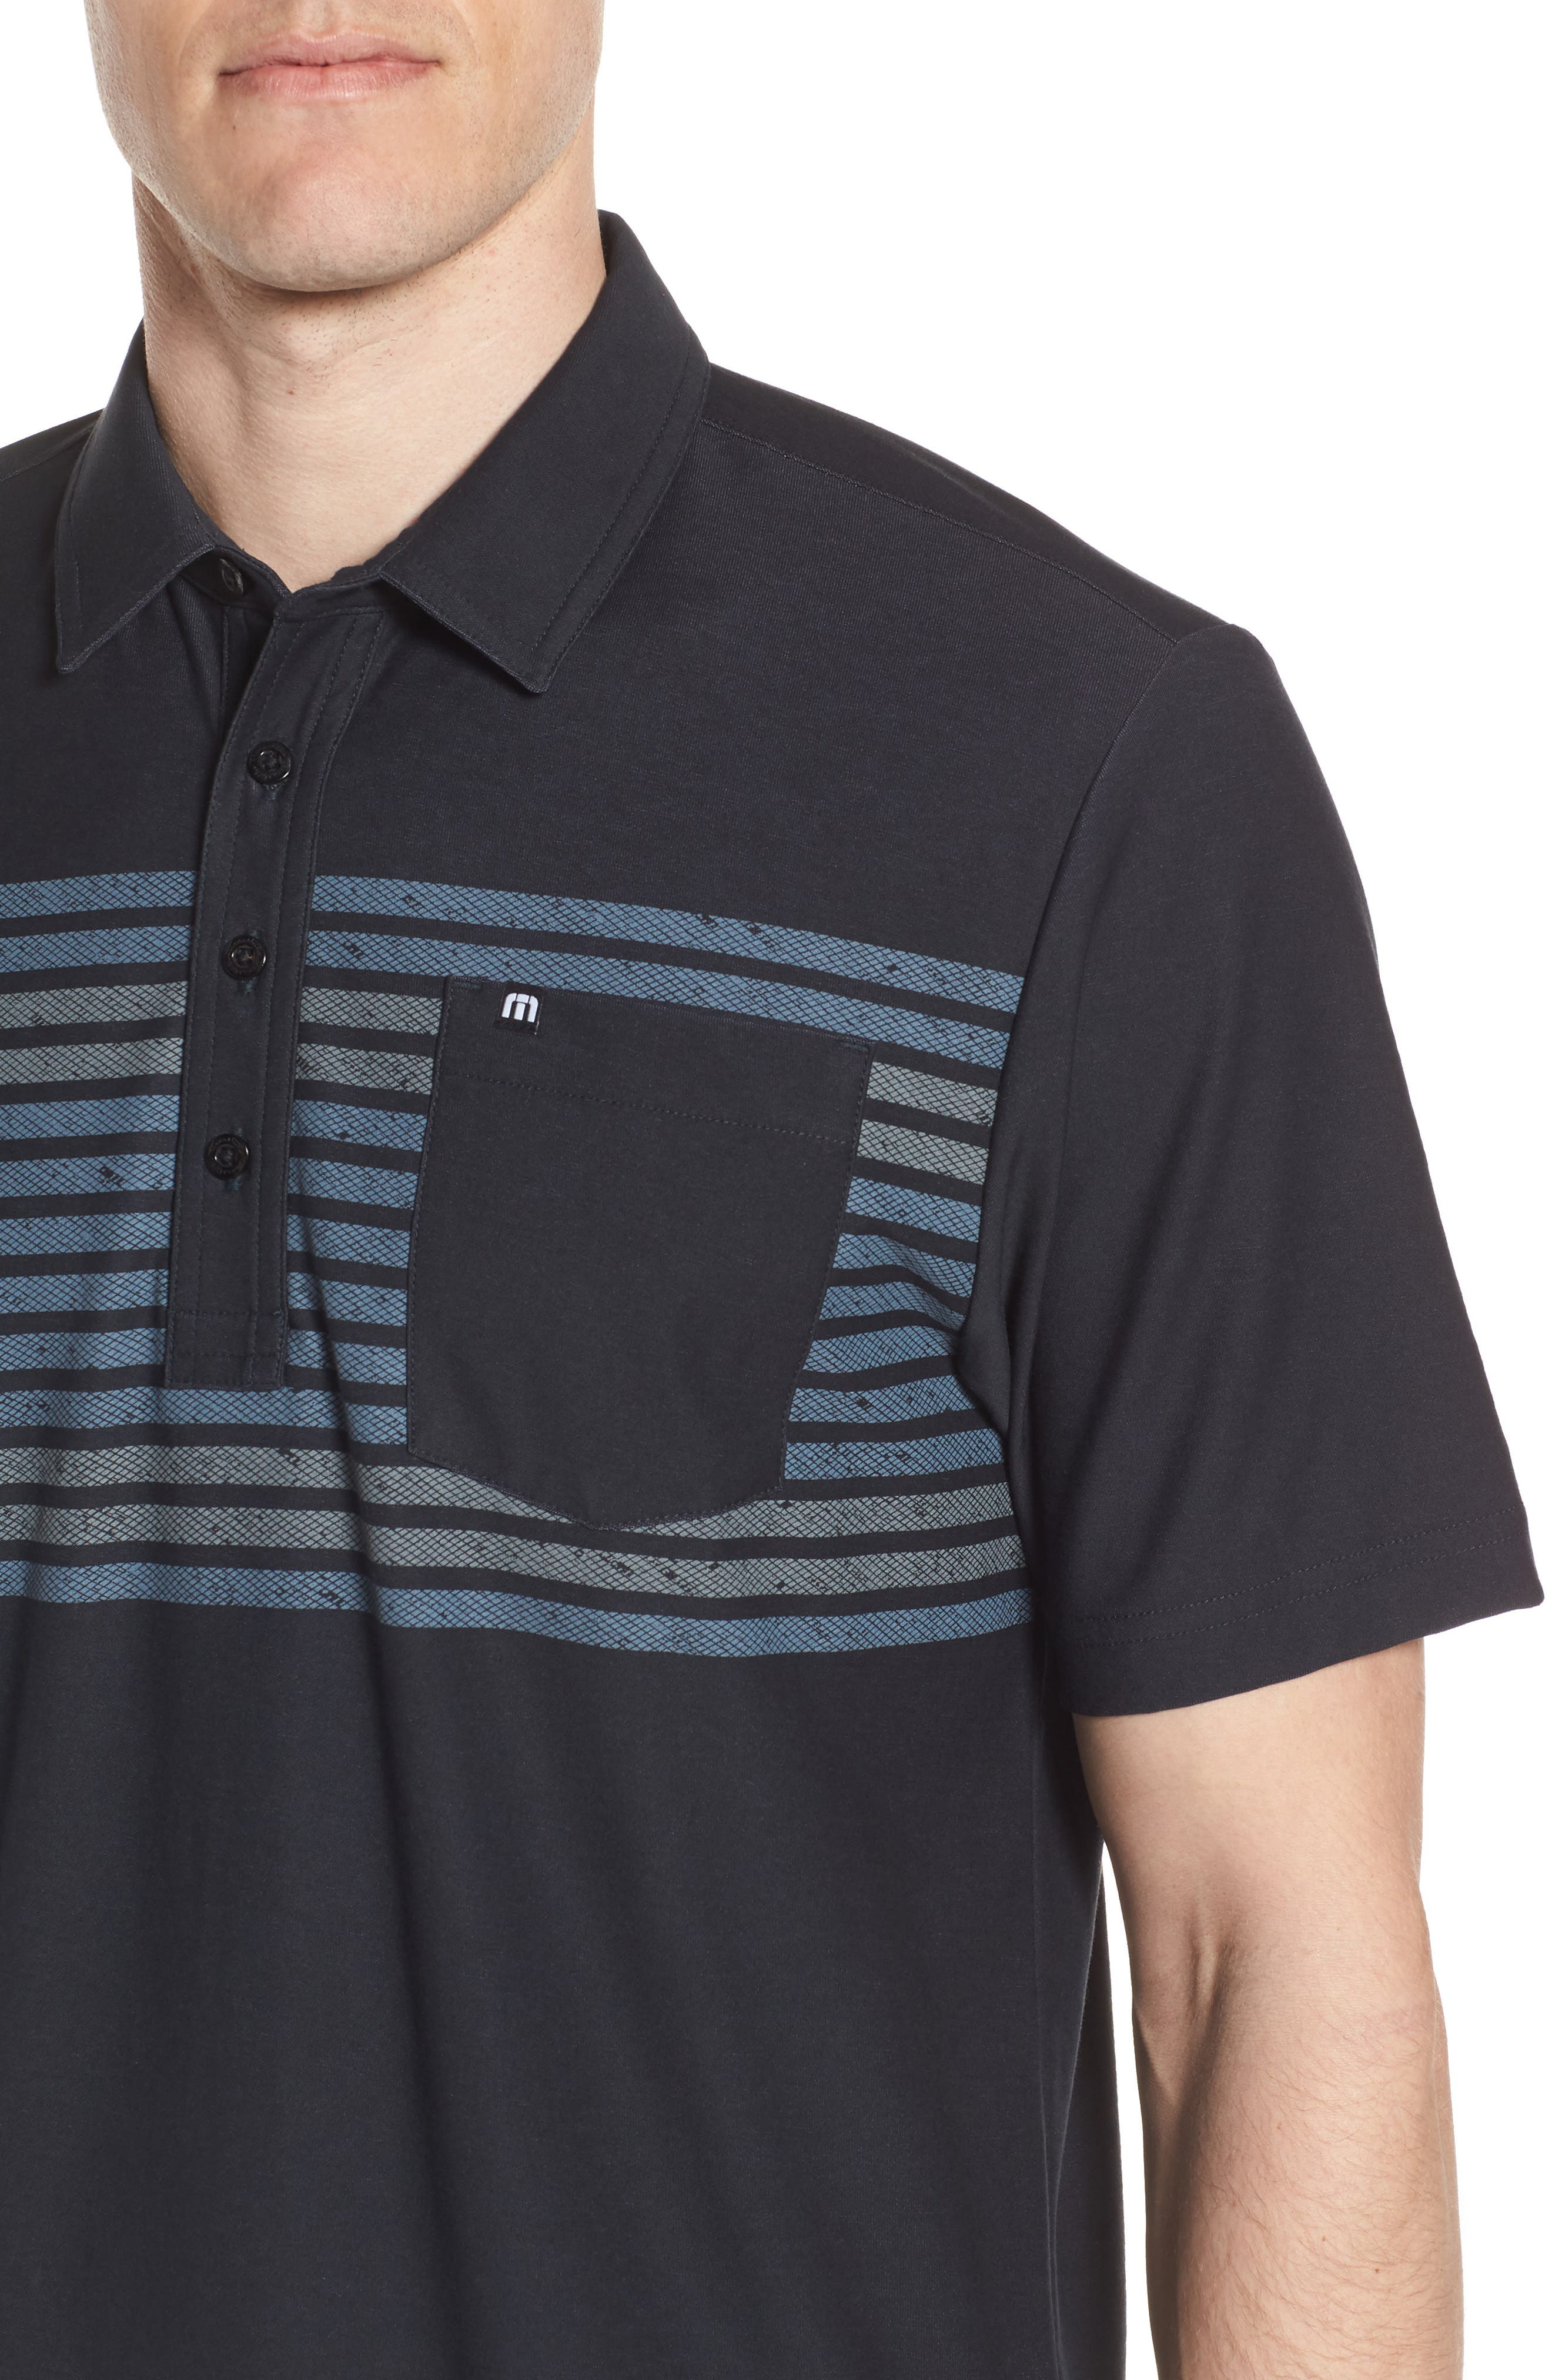 Sweet Lu Regular Fit Polo,                             Alternate thumbnail 4, color,                             BLACK/ GRISAILLE